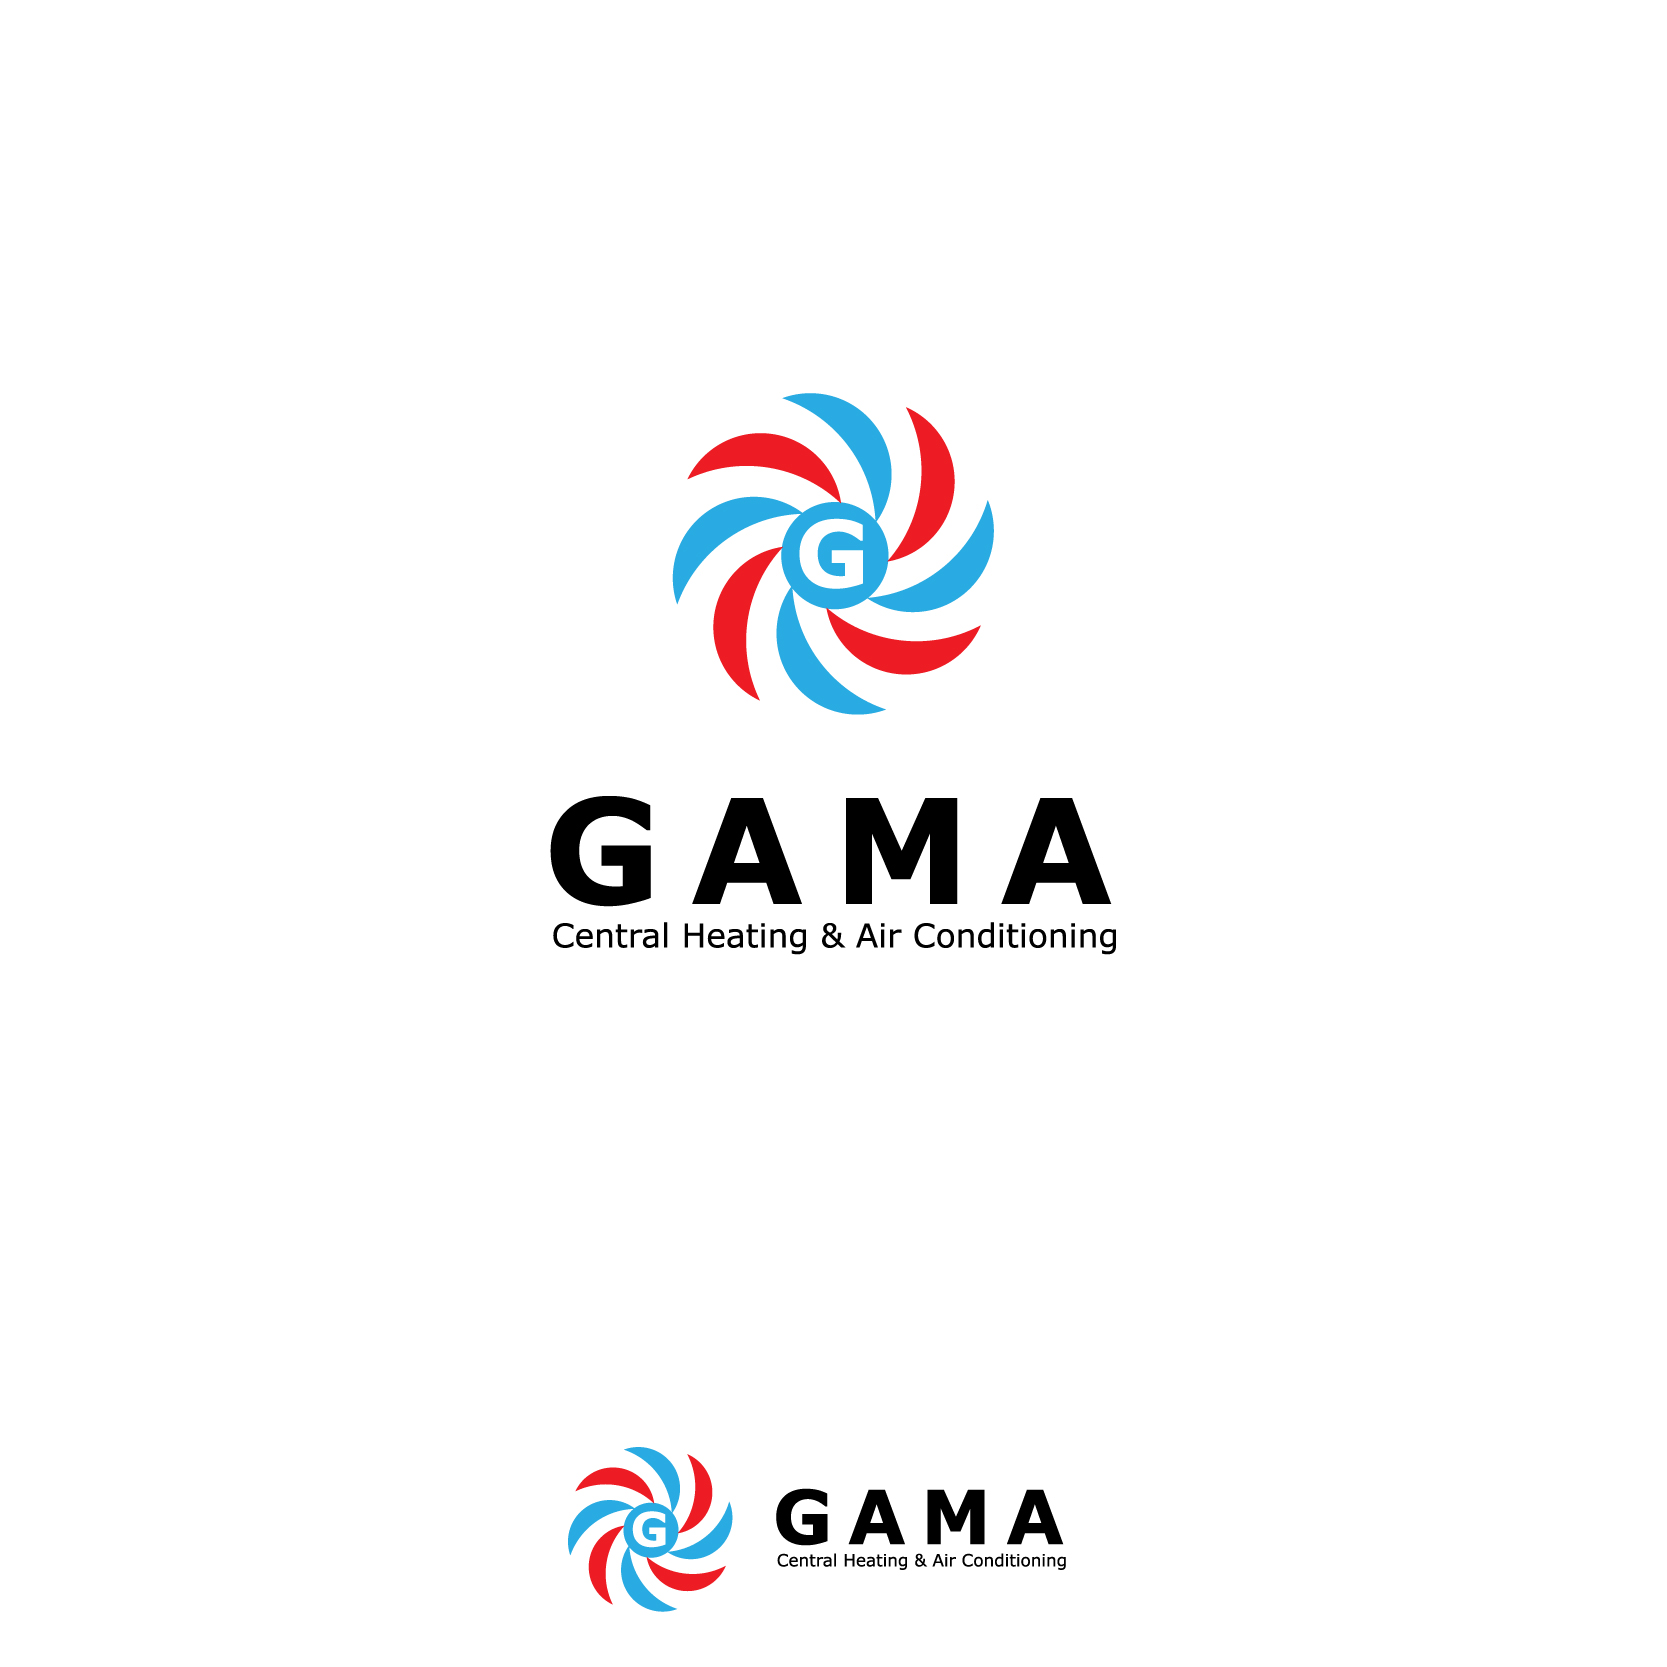 40 professional logo designs for gama central heating